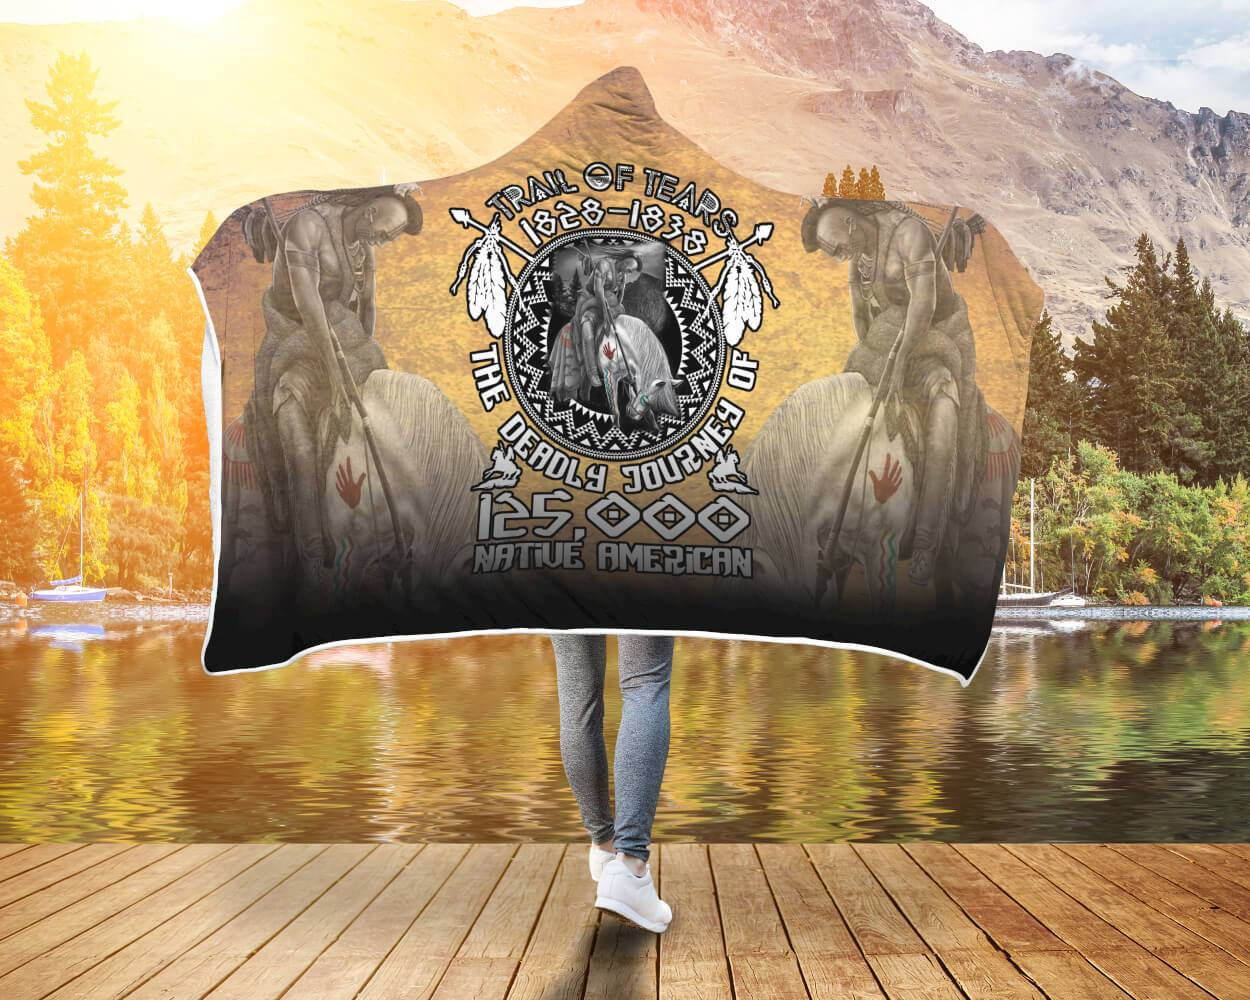 TRAIL OF TEARS 1828-1838 THE DEADLY JOURNEY 125.000 NATIVE AMERICAN hooded blanket